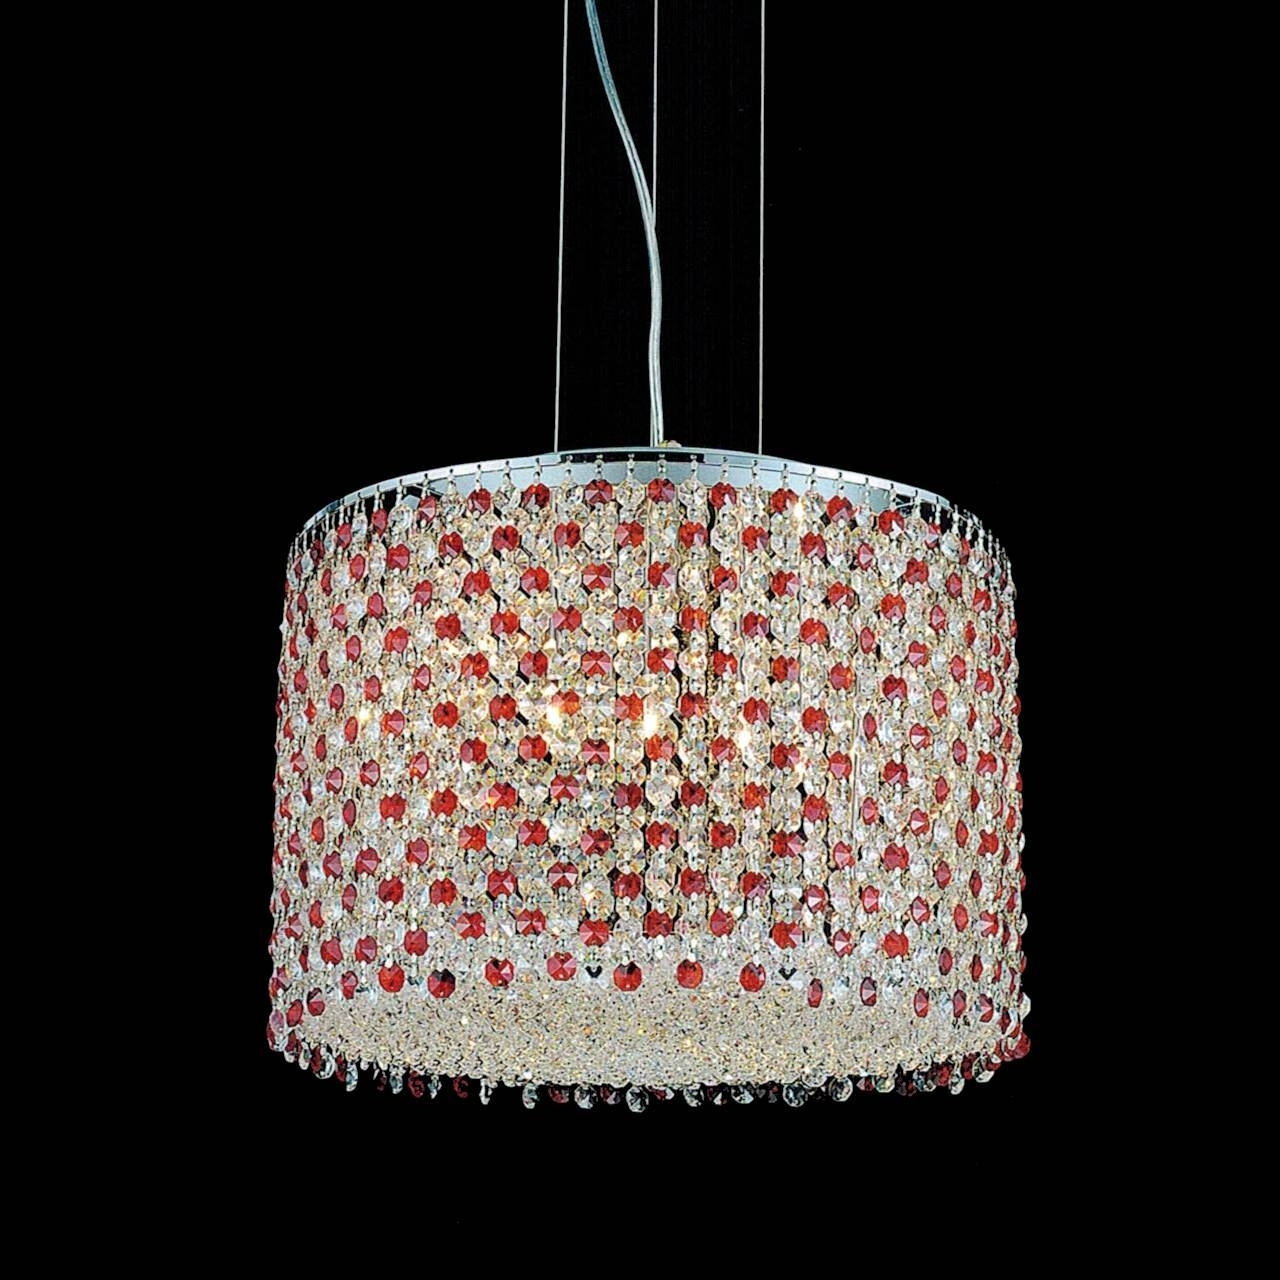 Best And Newest Purple Crystal Chandelier Lighting Regarding Brizzo Lighting Stores (View 2 of 15)